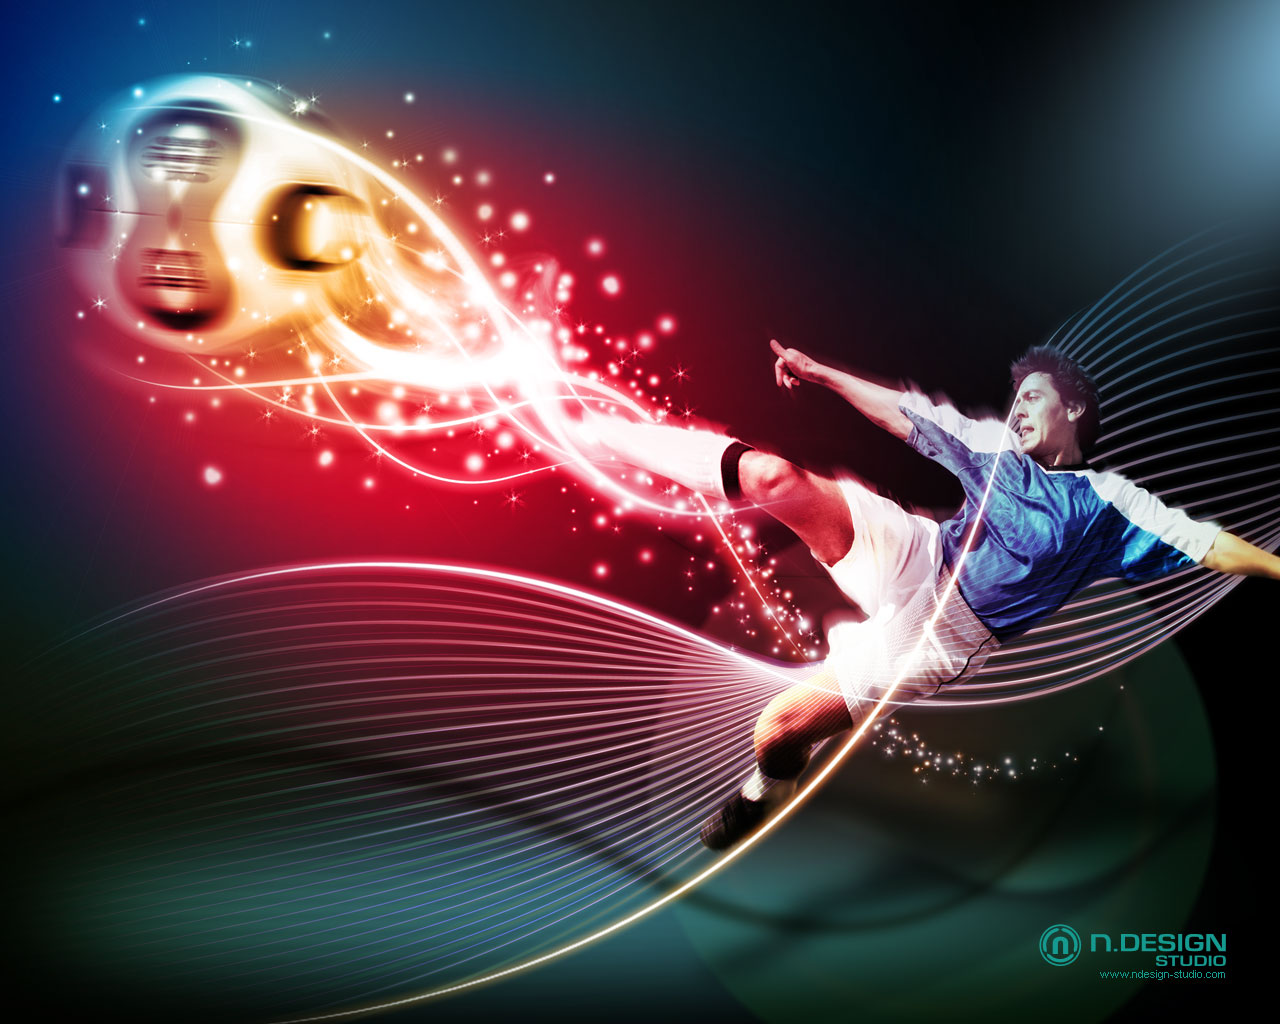 soccer computer wallpaper football Shannon blog 1280x1024